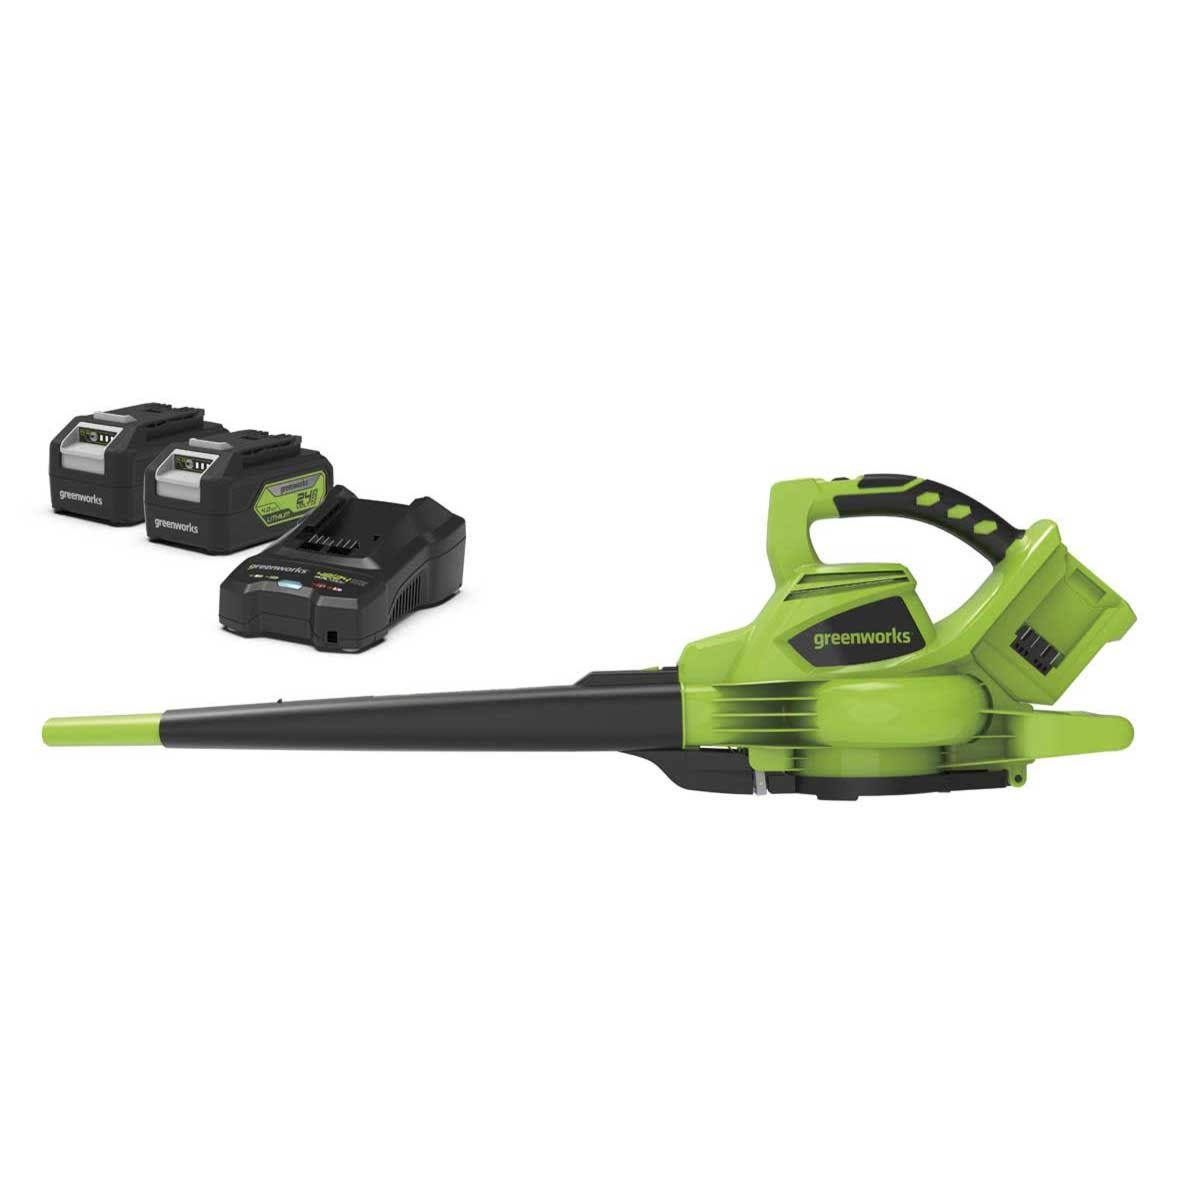 Greenworks 48v Cordless Blower and Vacuum with 2 x 24v 4Ah Batteries and Charger